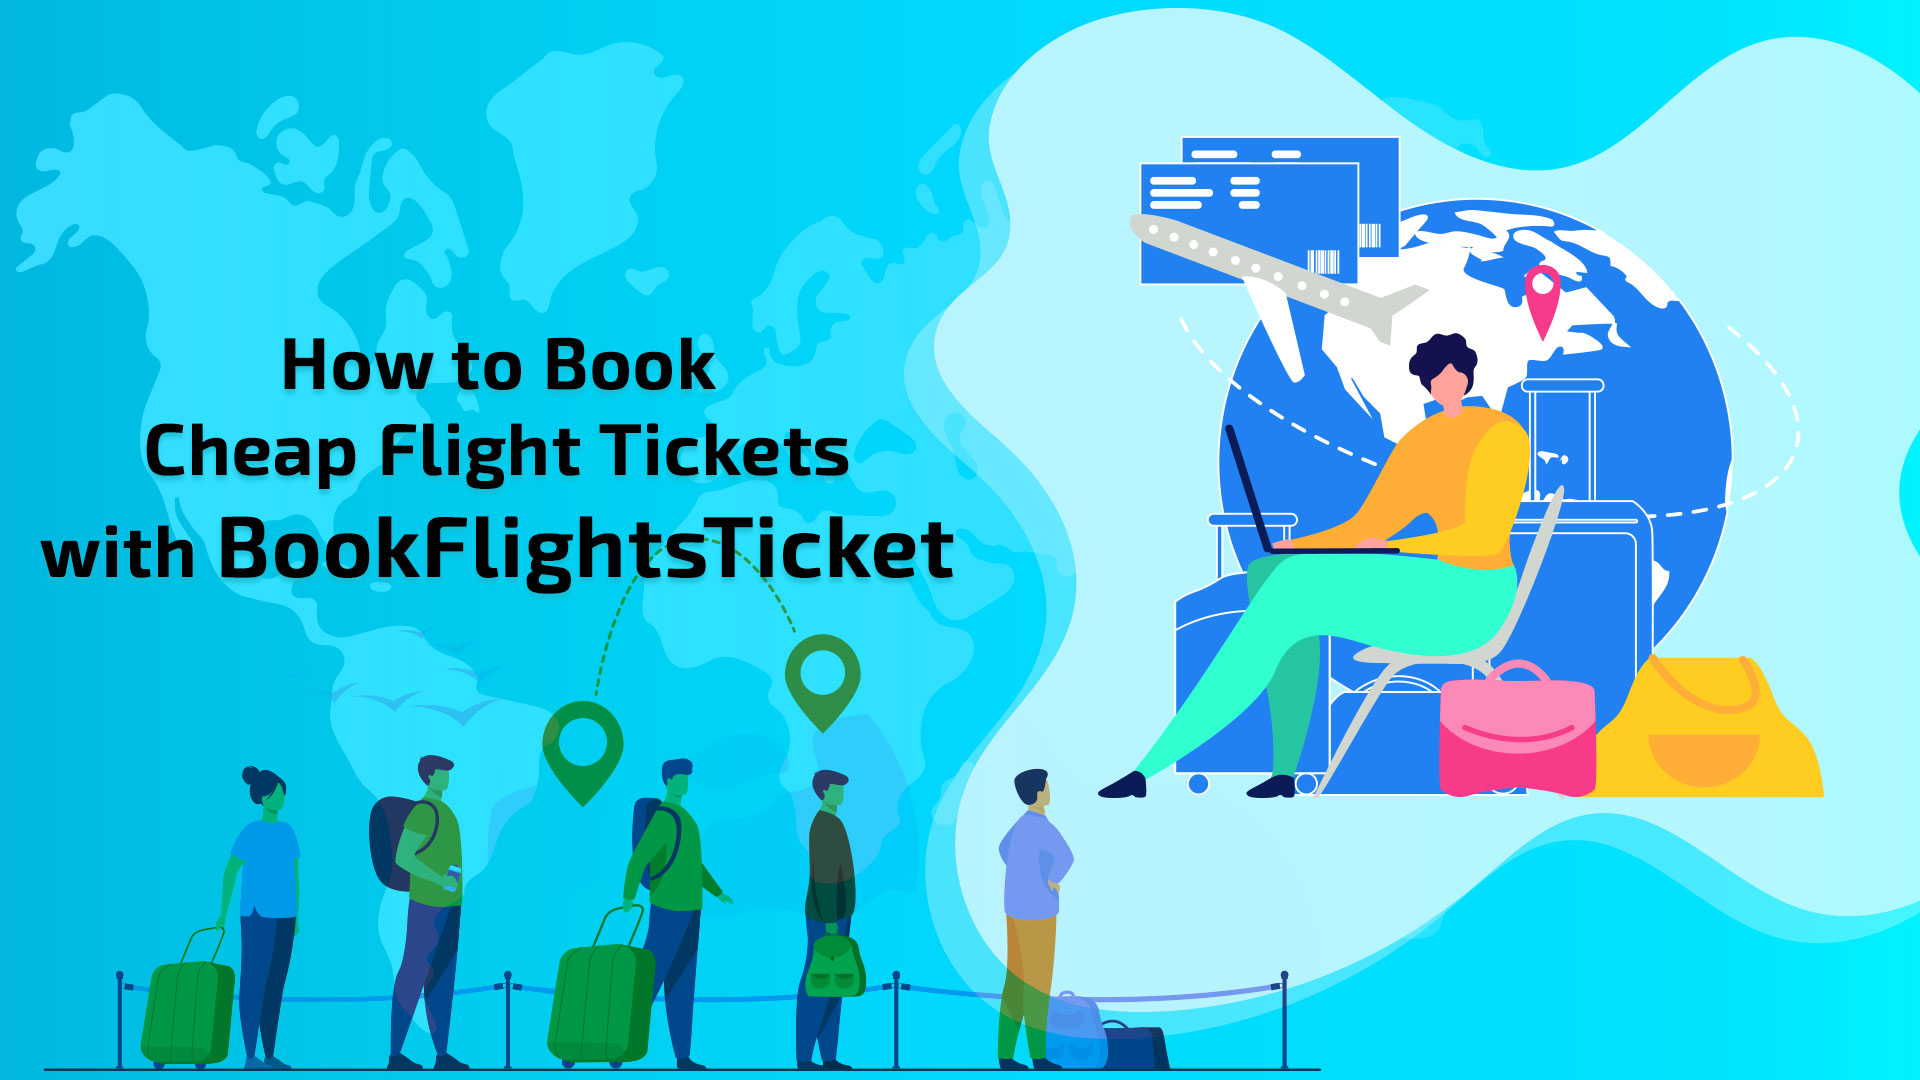 How to Book Cheap Flight Tickets with BookFlightsTicket